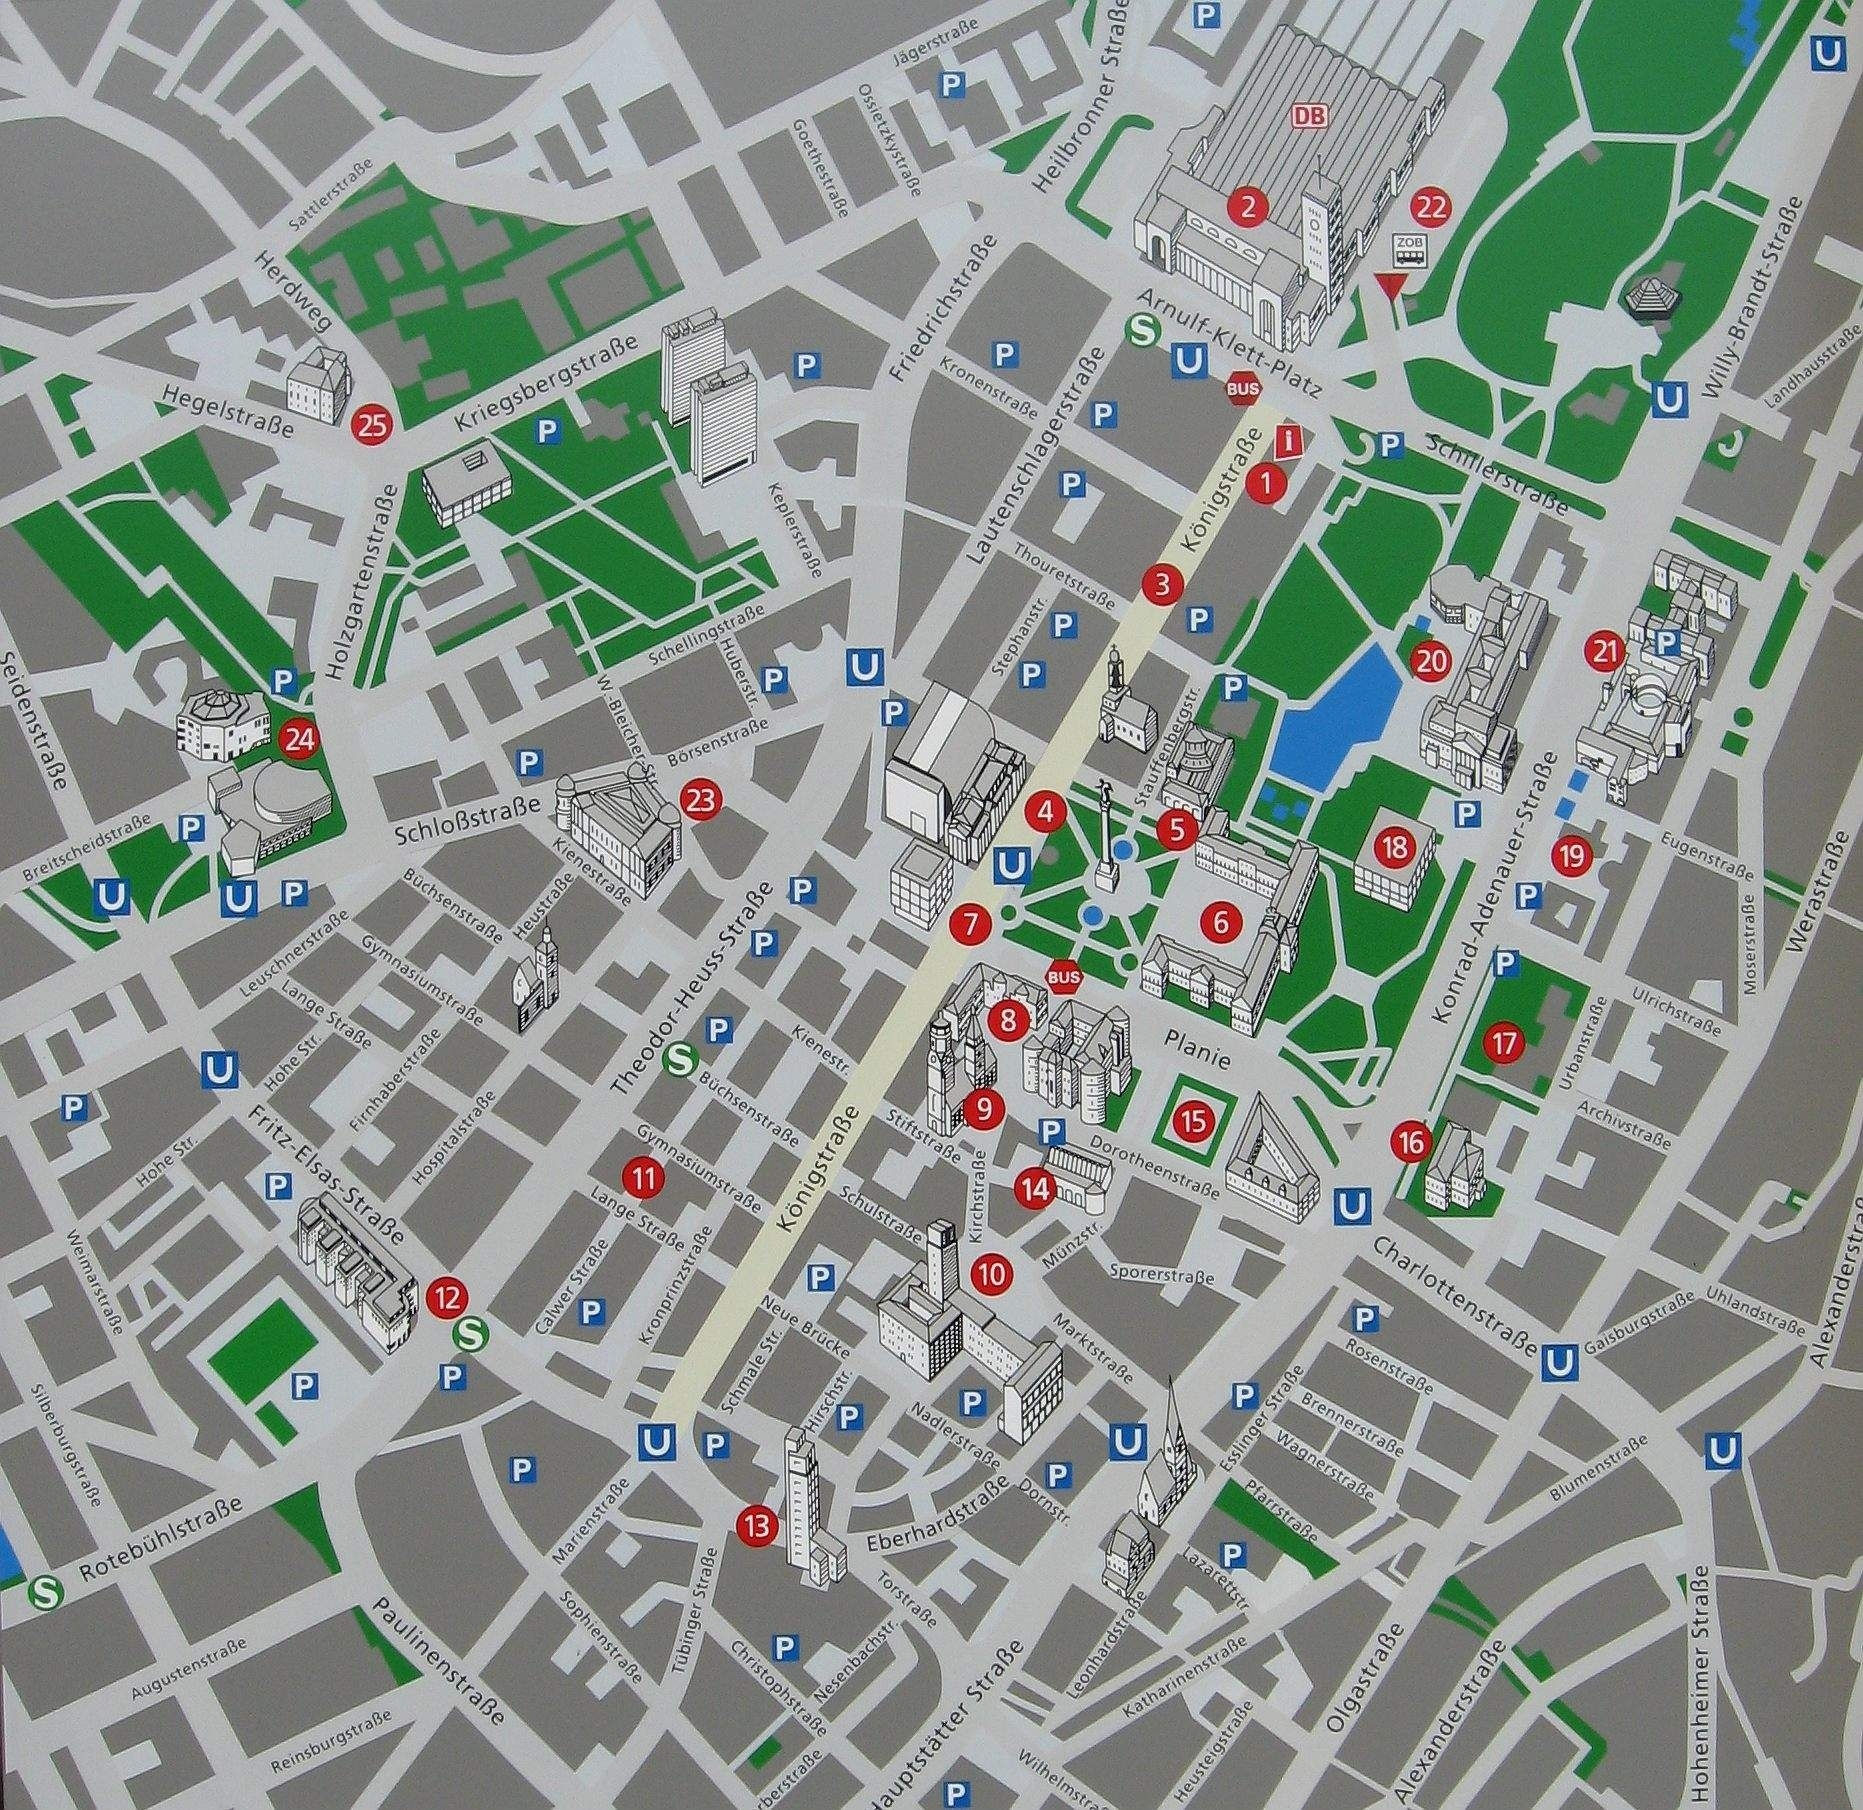 Large Stuttgart Maps For Free Download And Print   High intended for Weather Radar Map Stuttgart Germany